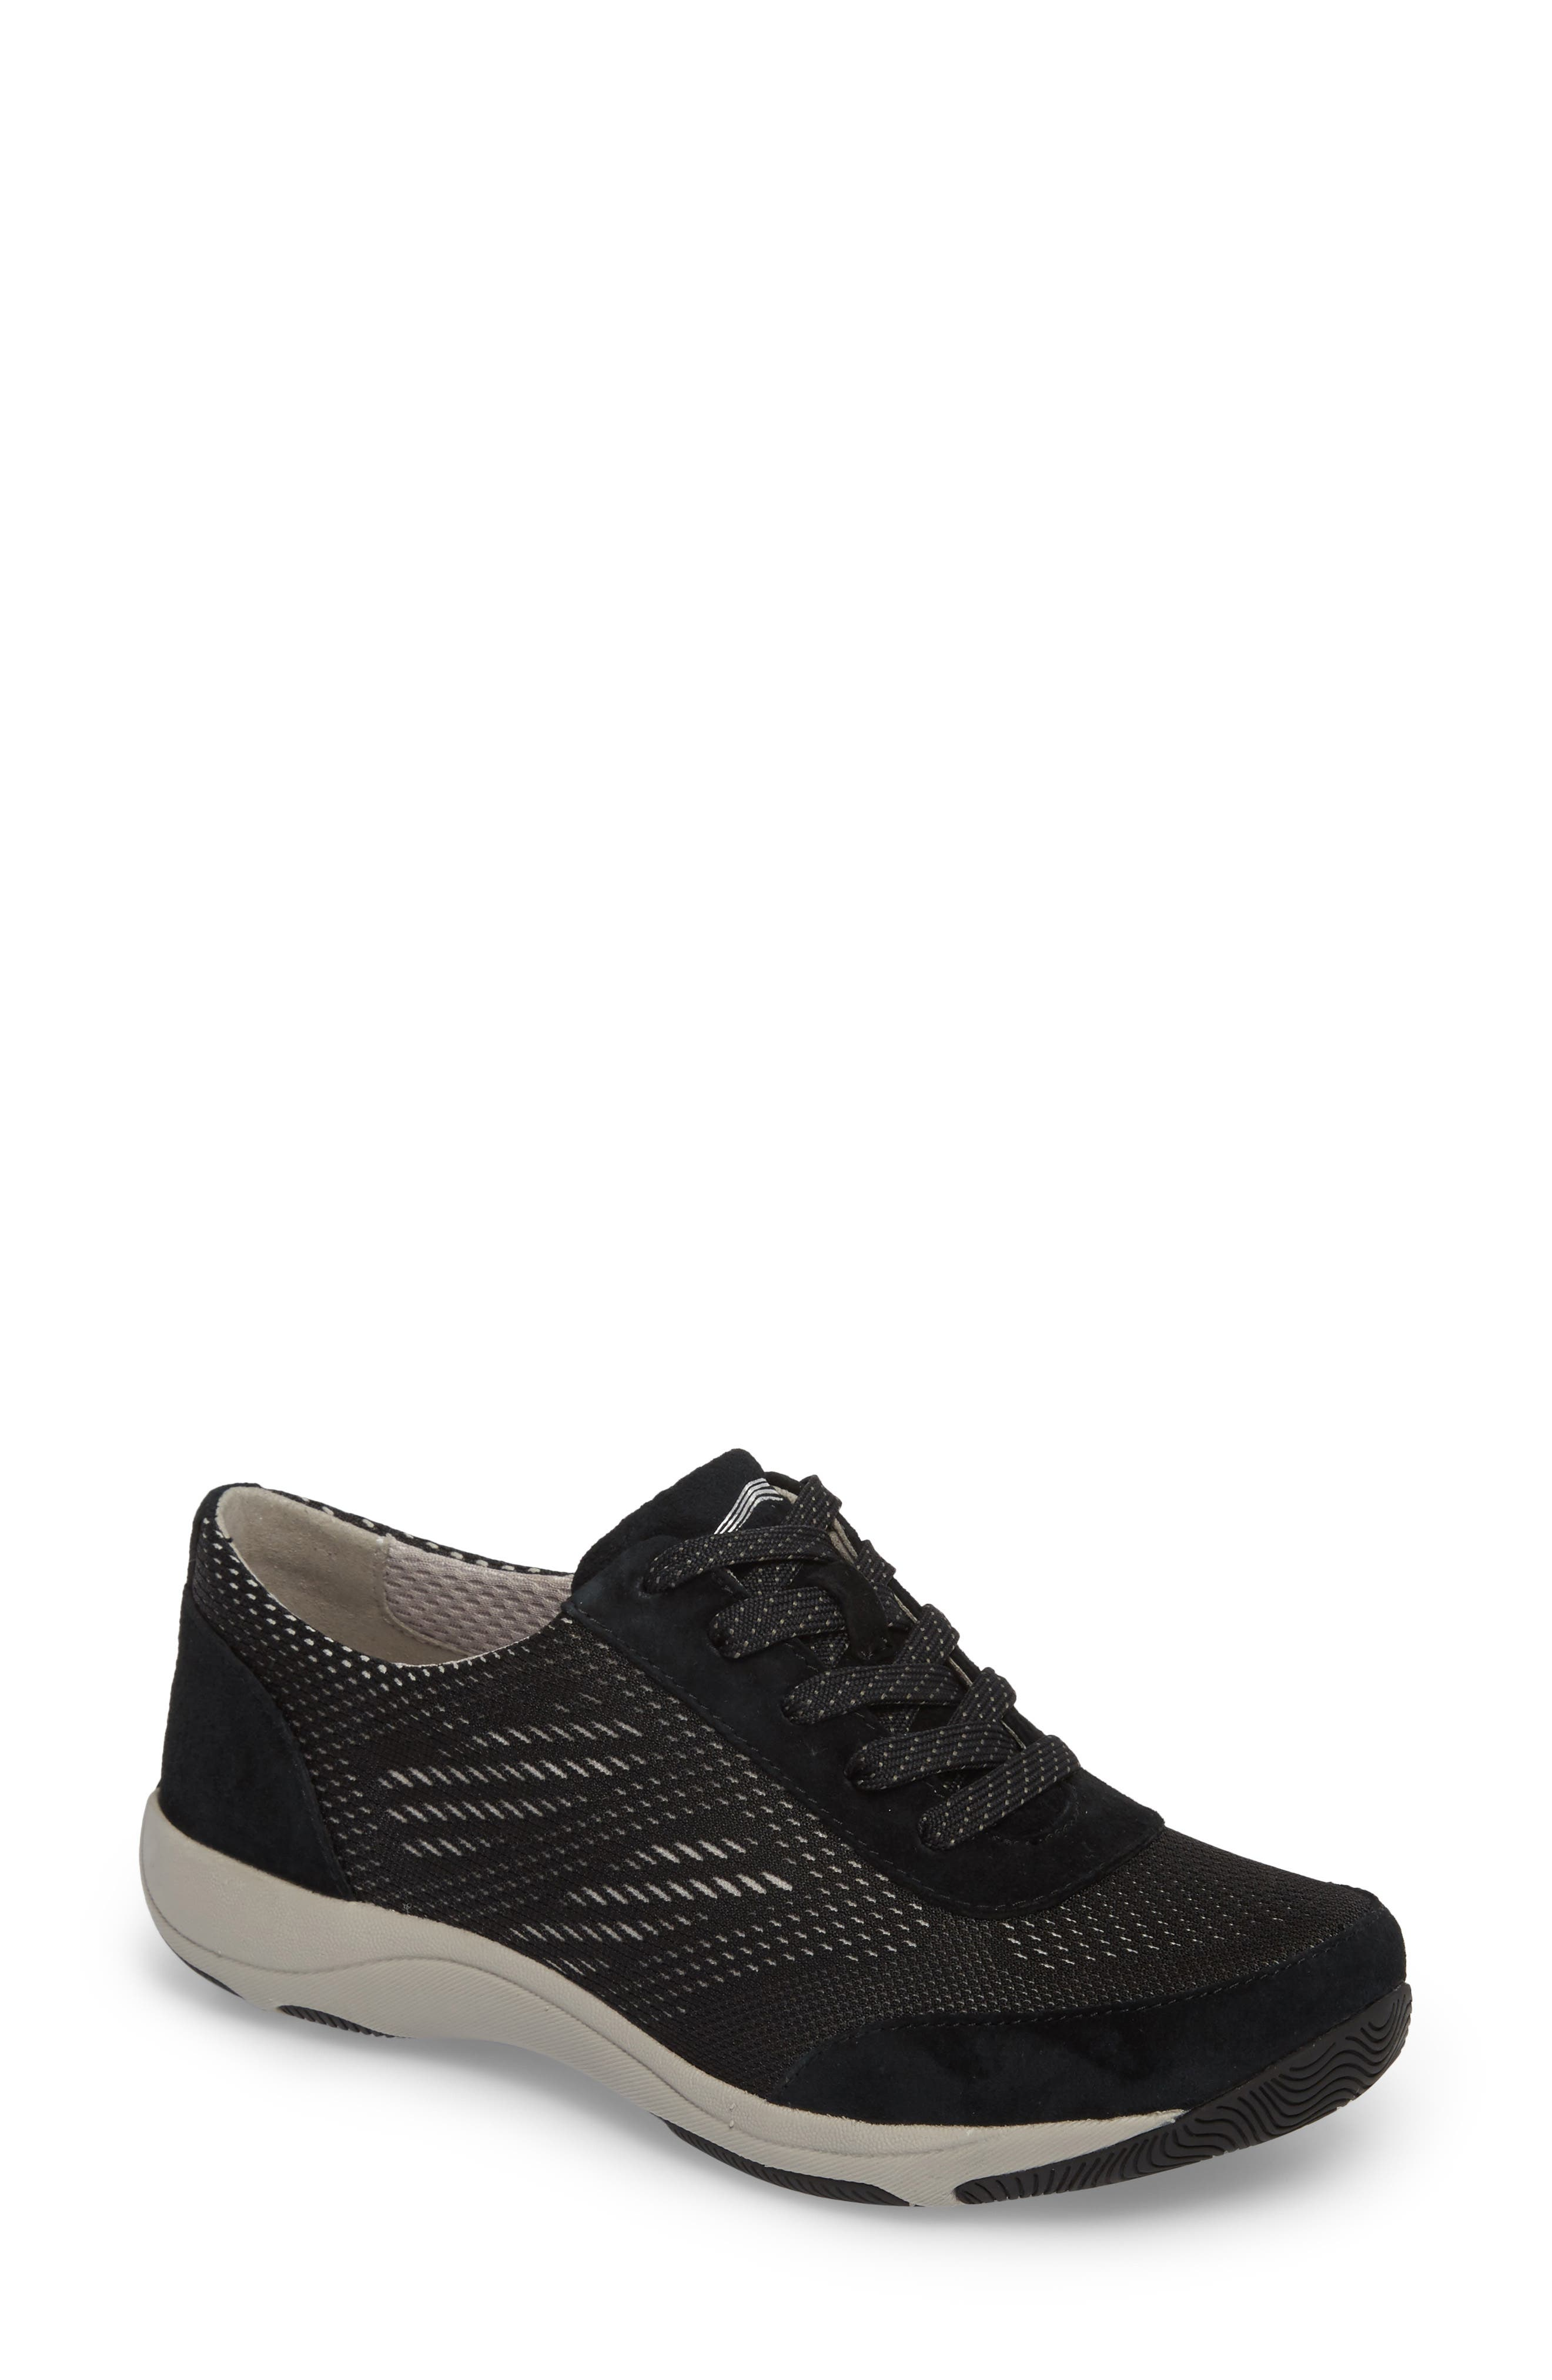 Hayes Sneaker,                             Main thumbnail 1, color,                             BLACK SUEDE